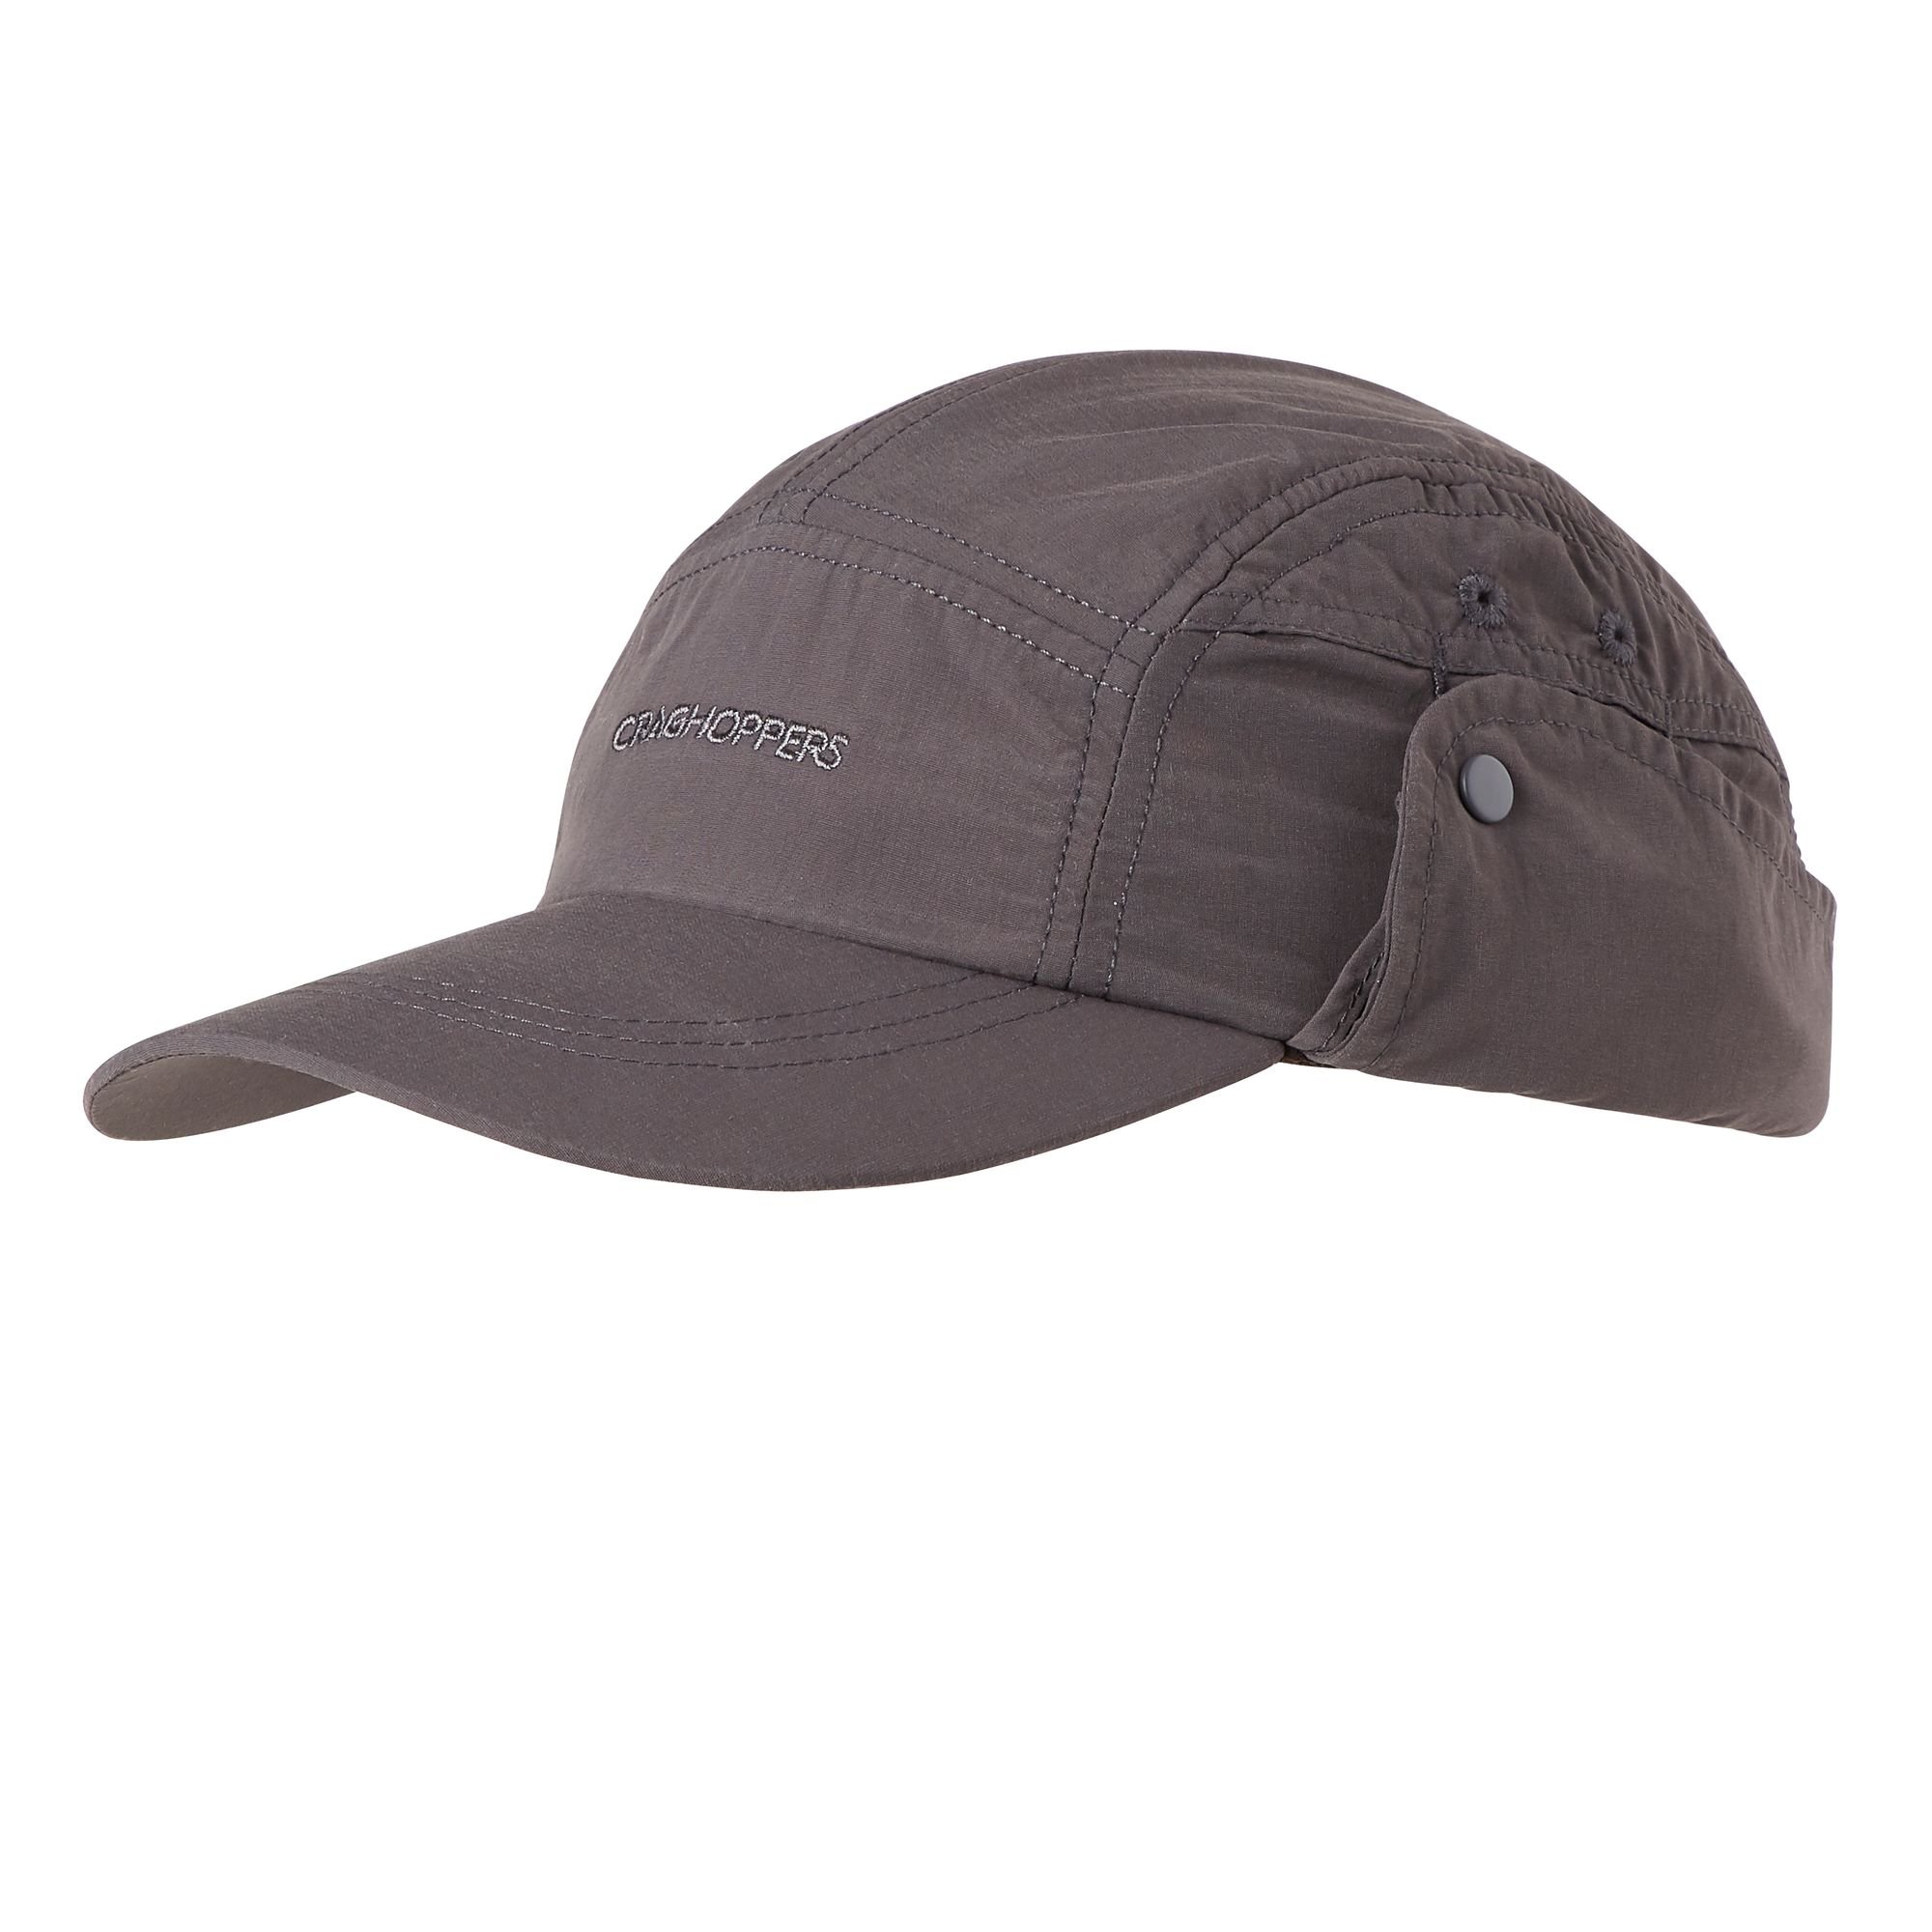 47bf8d948b916 Craghoppers Men s Nosilife Desert Hat Insect Repellent Accessories product  image